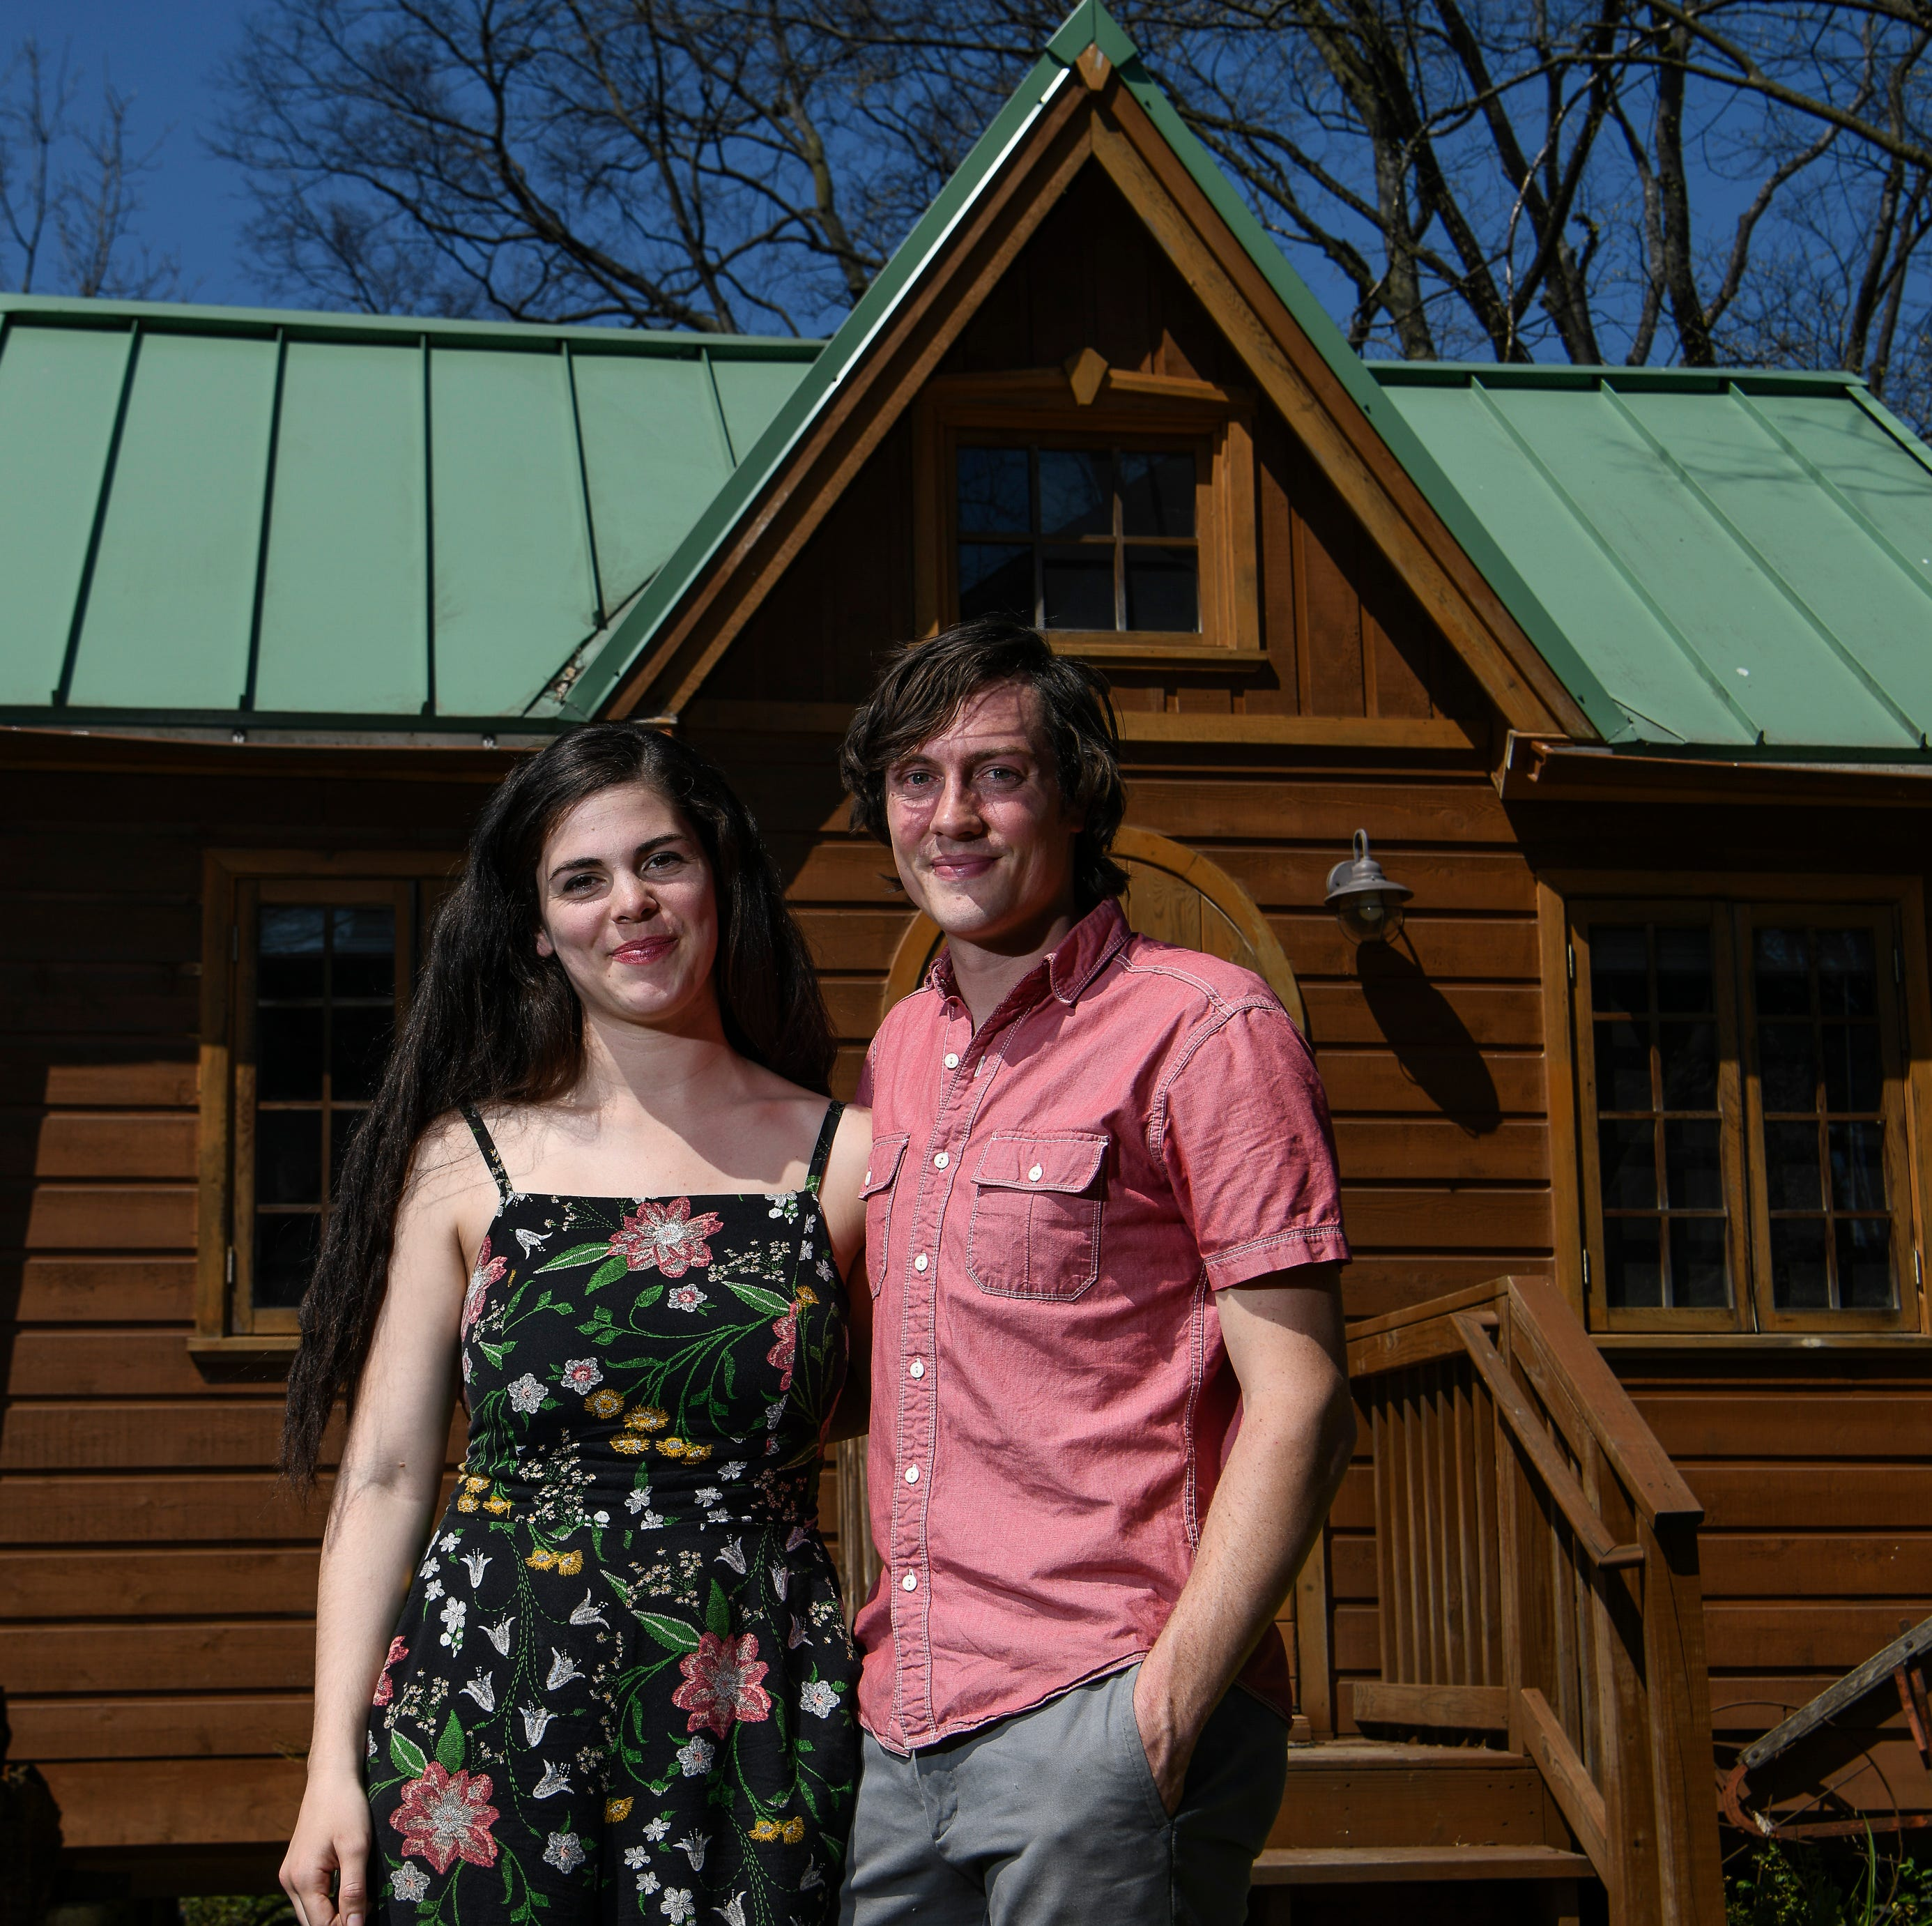 This tucked-away tiny house is Tennessee's most popular Airbnb